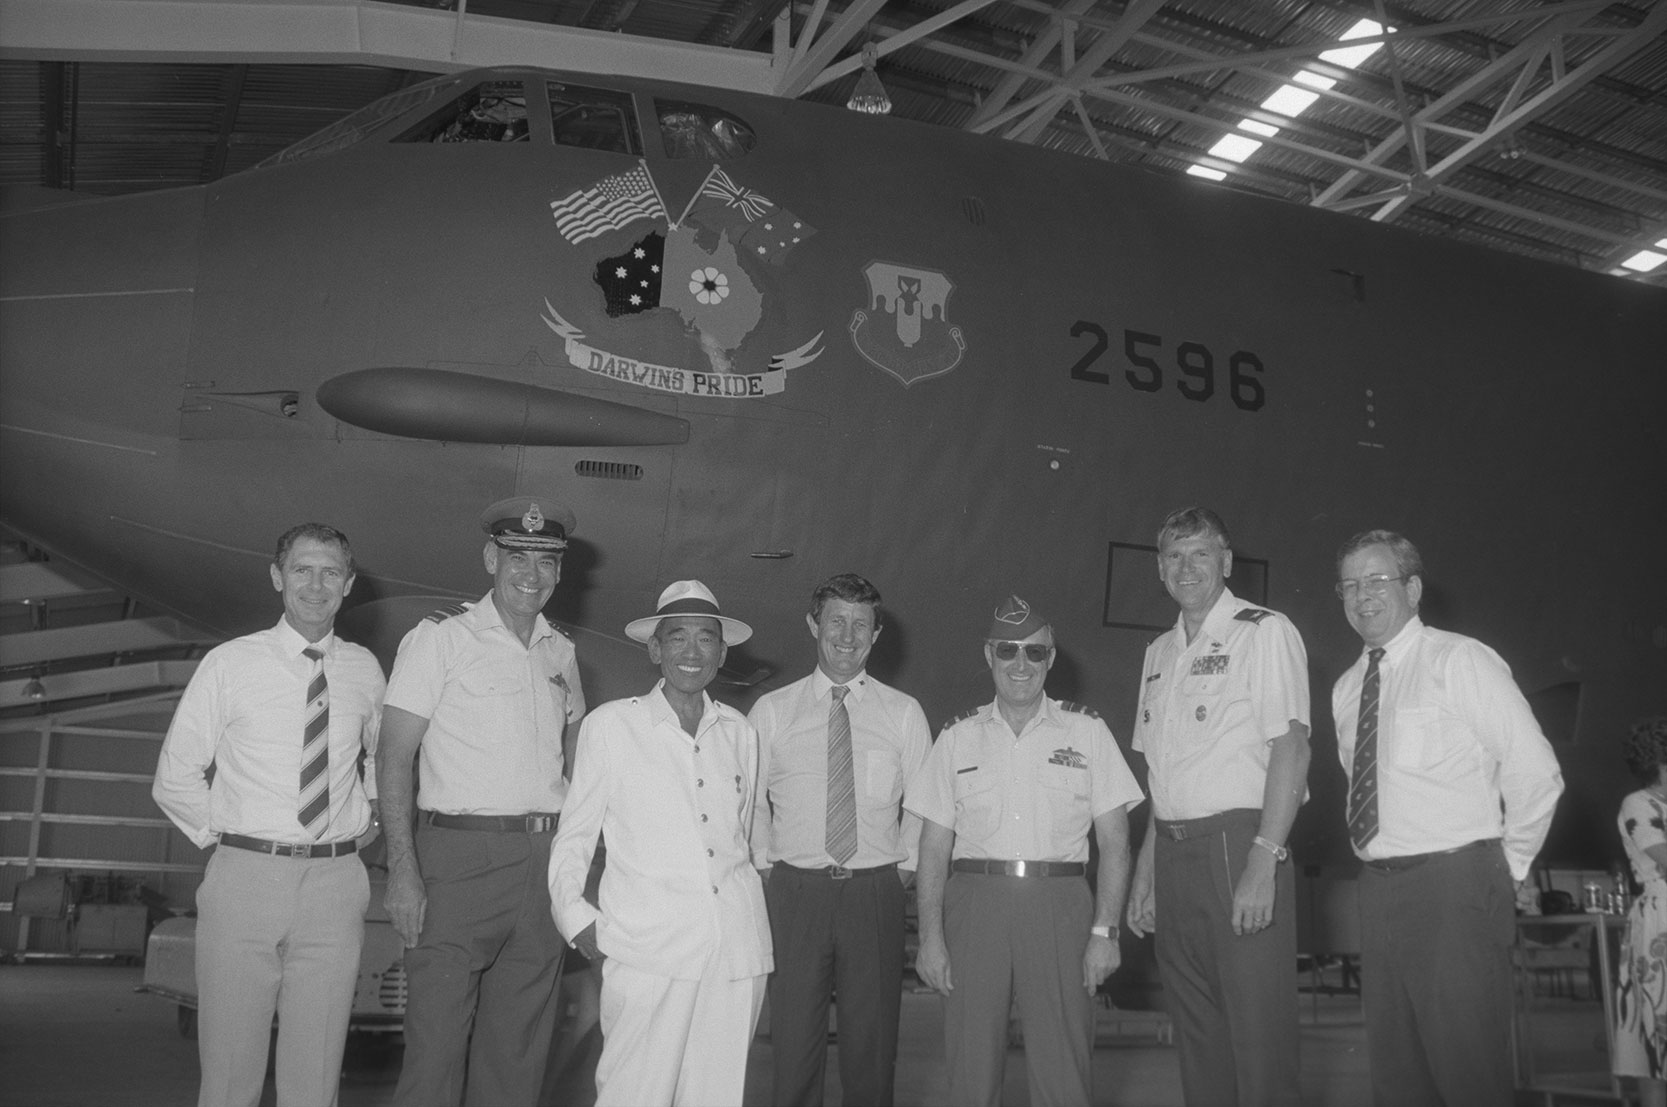 Opening of the Darwin Aviation Museum, 2 June 1990<br />Image courtesy of Library & Archives NT,  Department of the Chief Minister, NTRS 3823 P1, Box 11, BW2909, Image 27